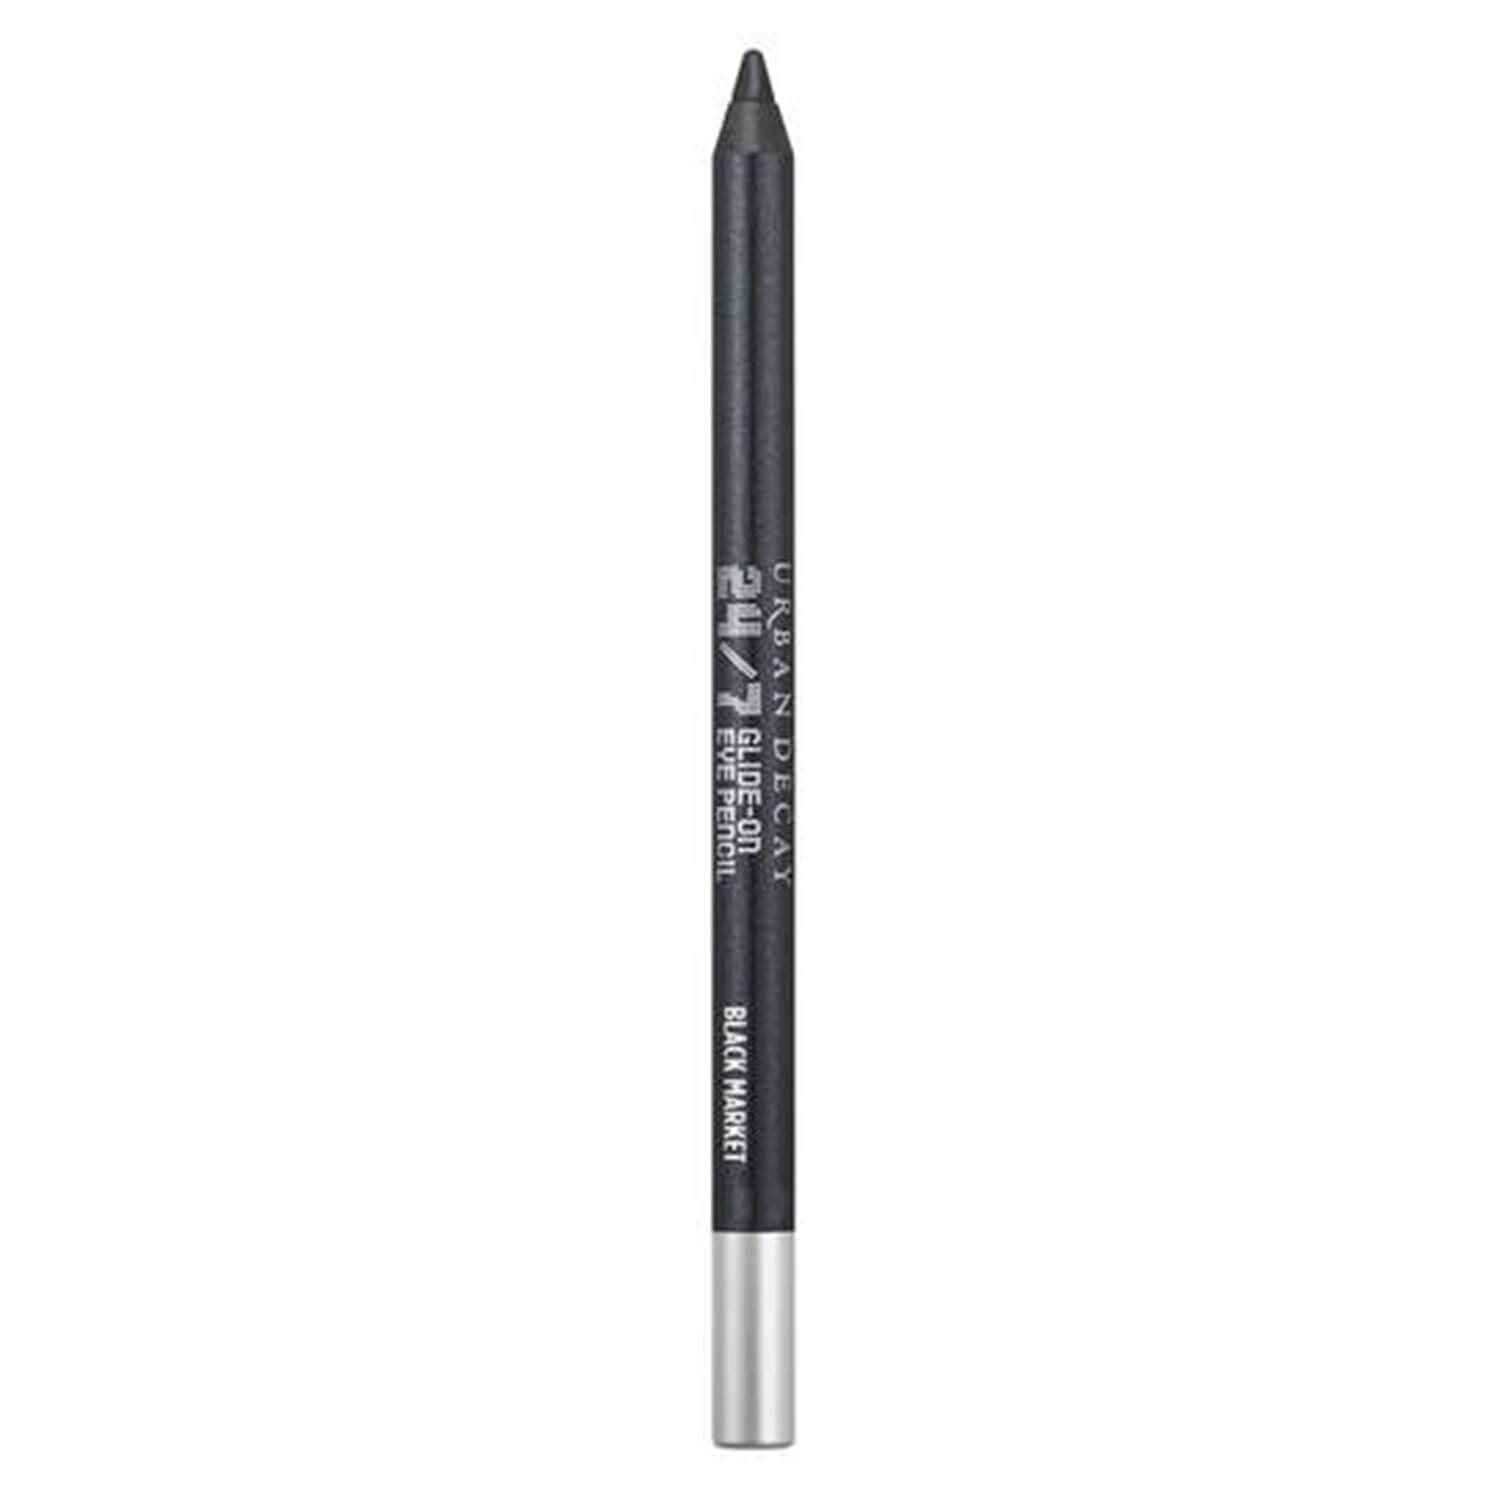 24/7 Glide-On - Eye Pencil Cherry Black Market